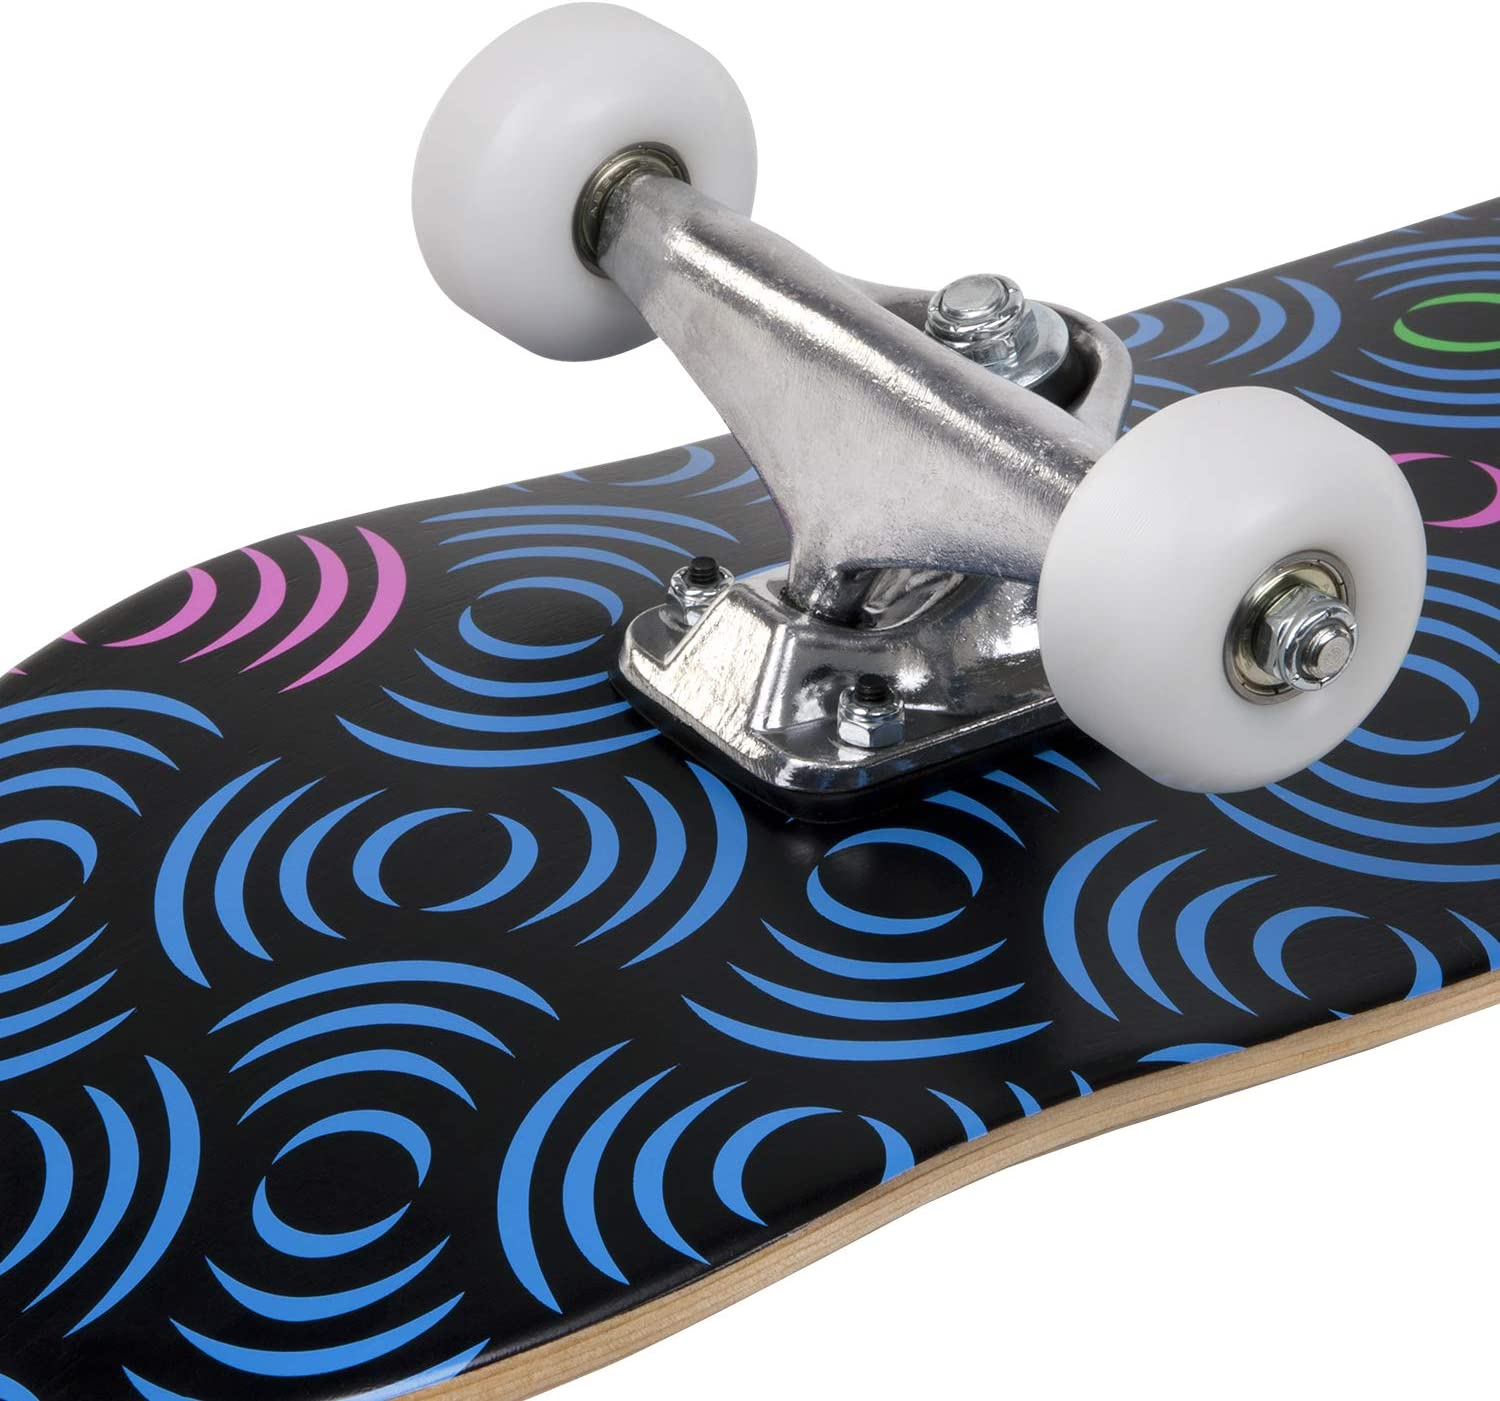 7.75 8.0 Inch Cal 7 Complete Skateboard